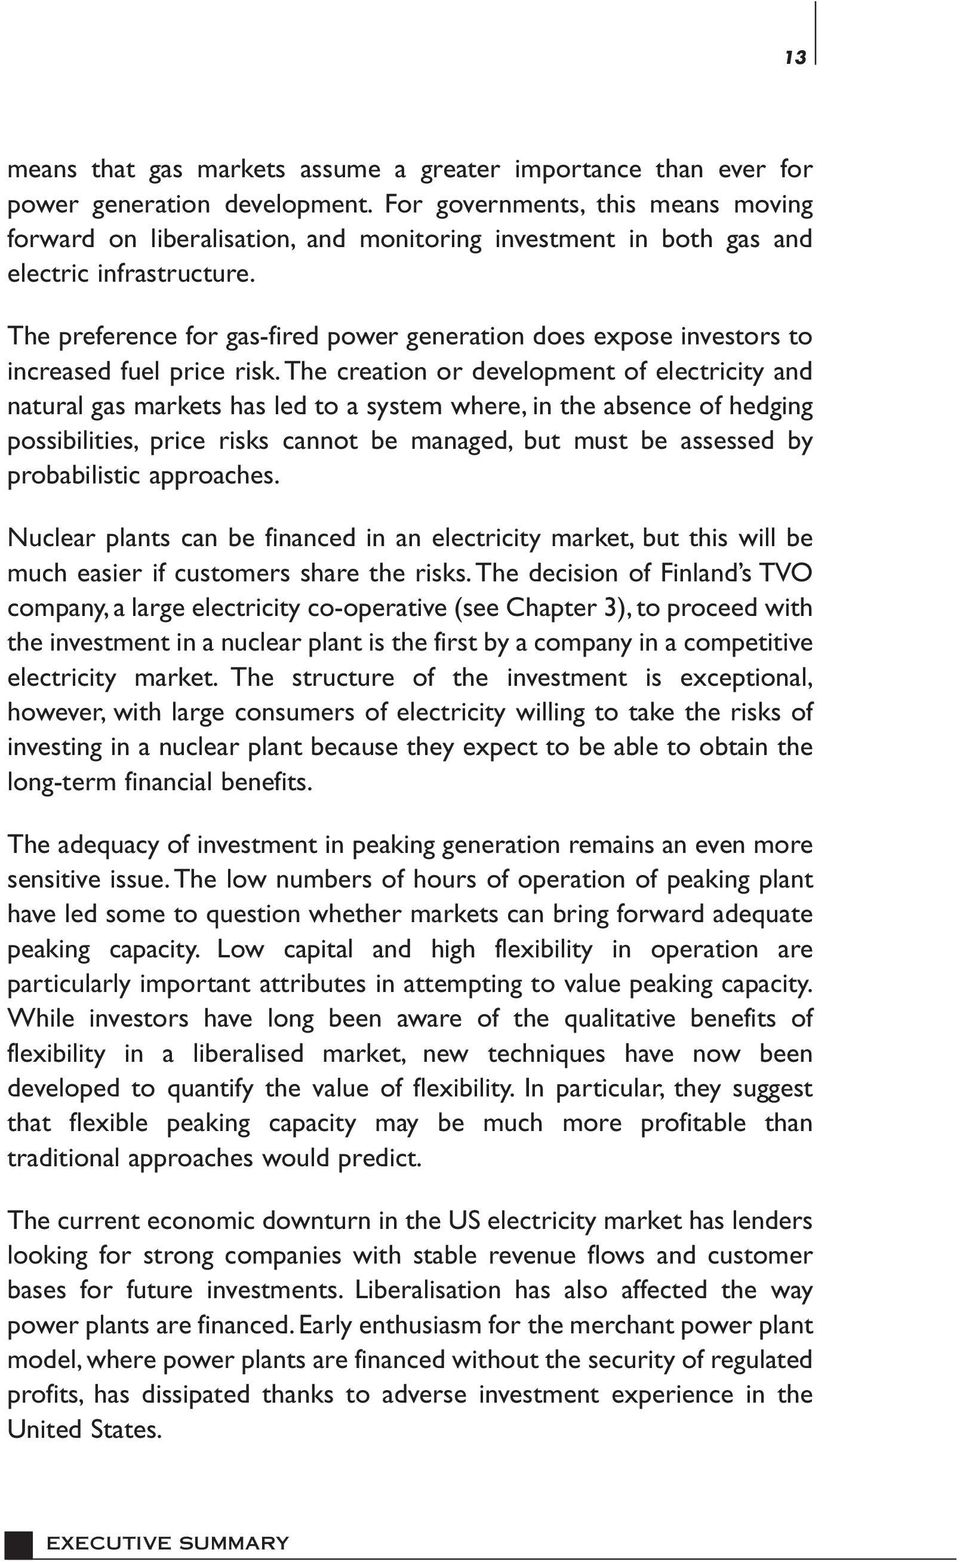 The preference for gas-fired power generation does expose investors to increased fuel price risk.